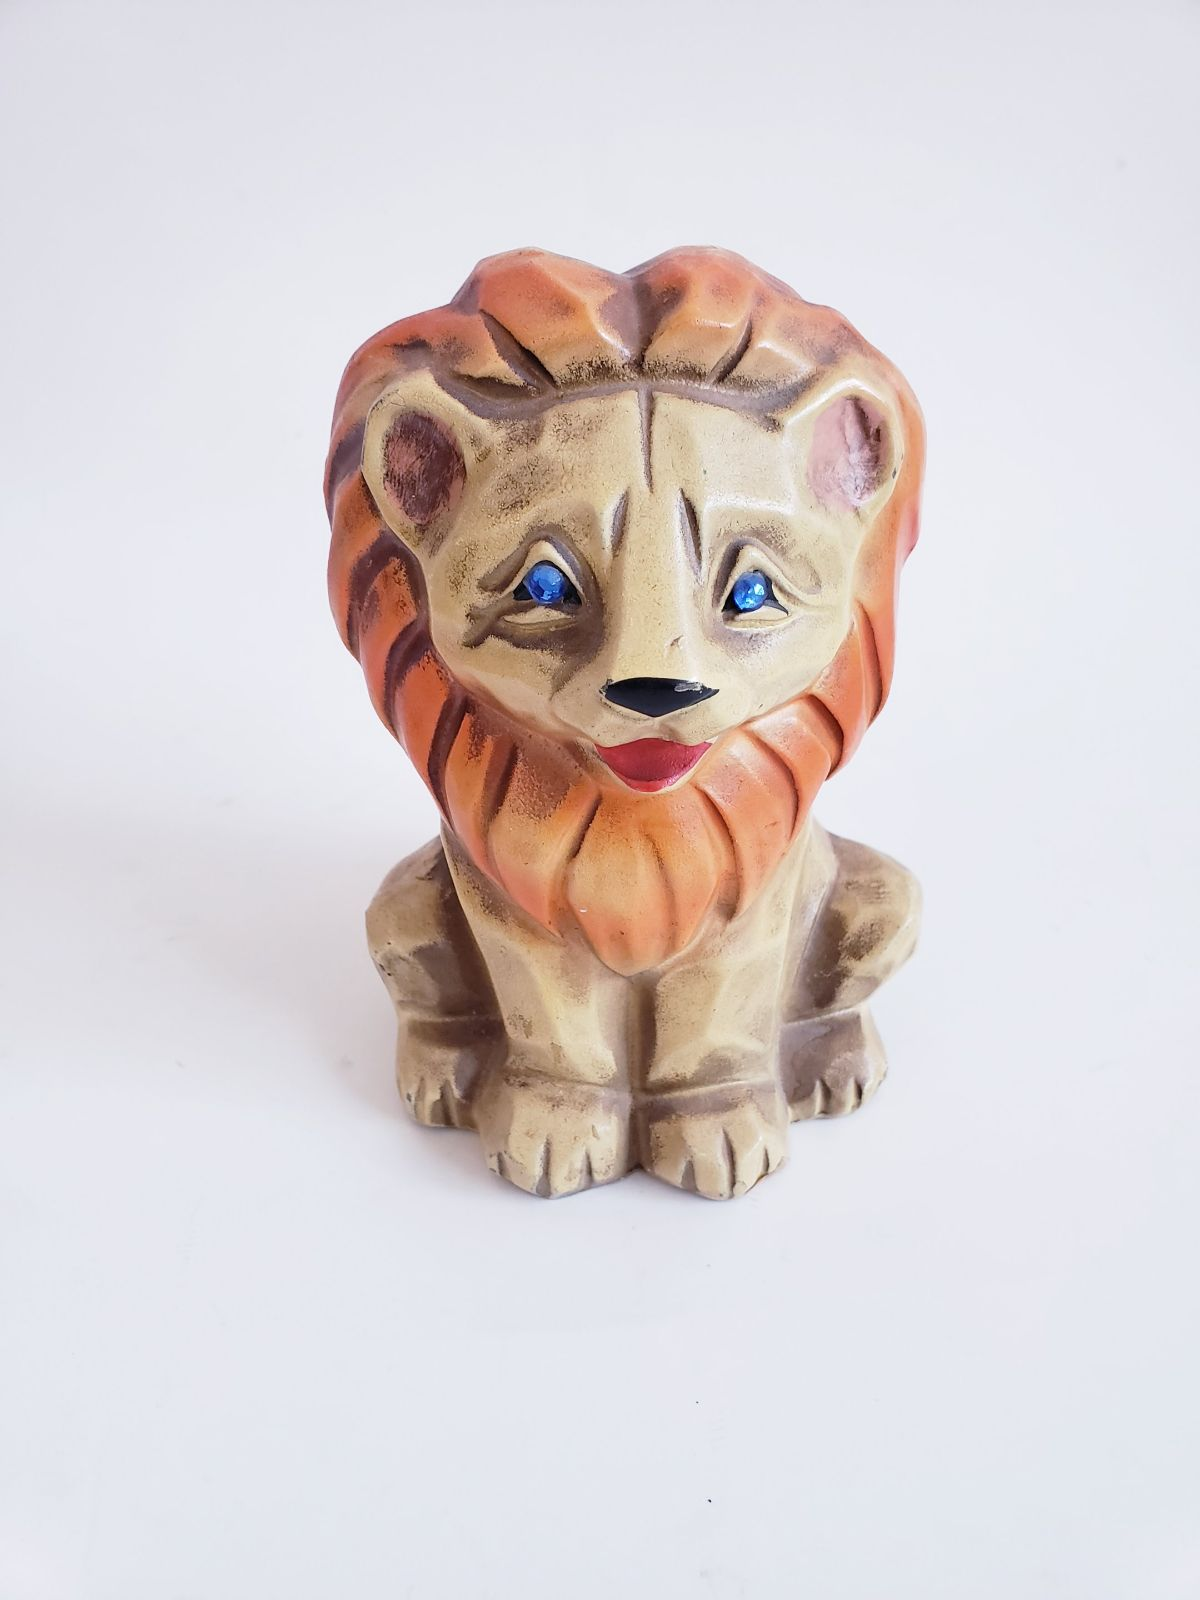 MCM Napco Lion Bank vtg Ceramic figurine